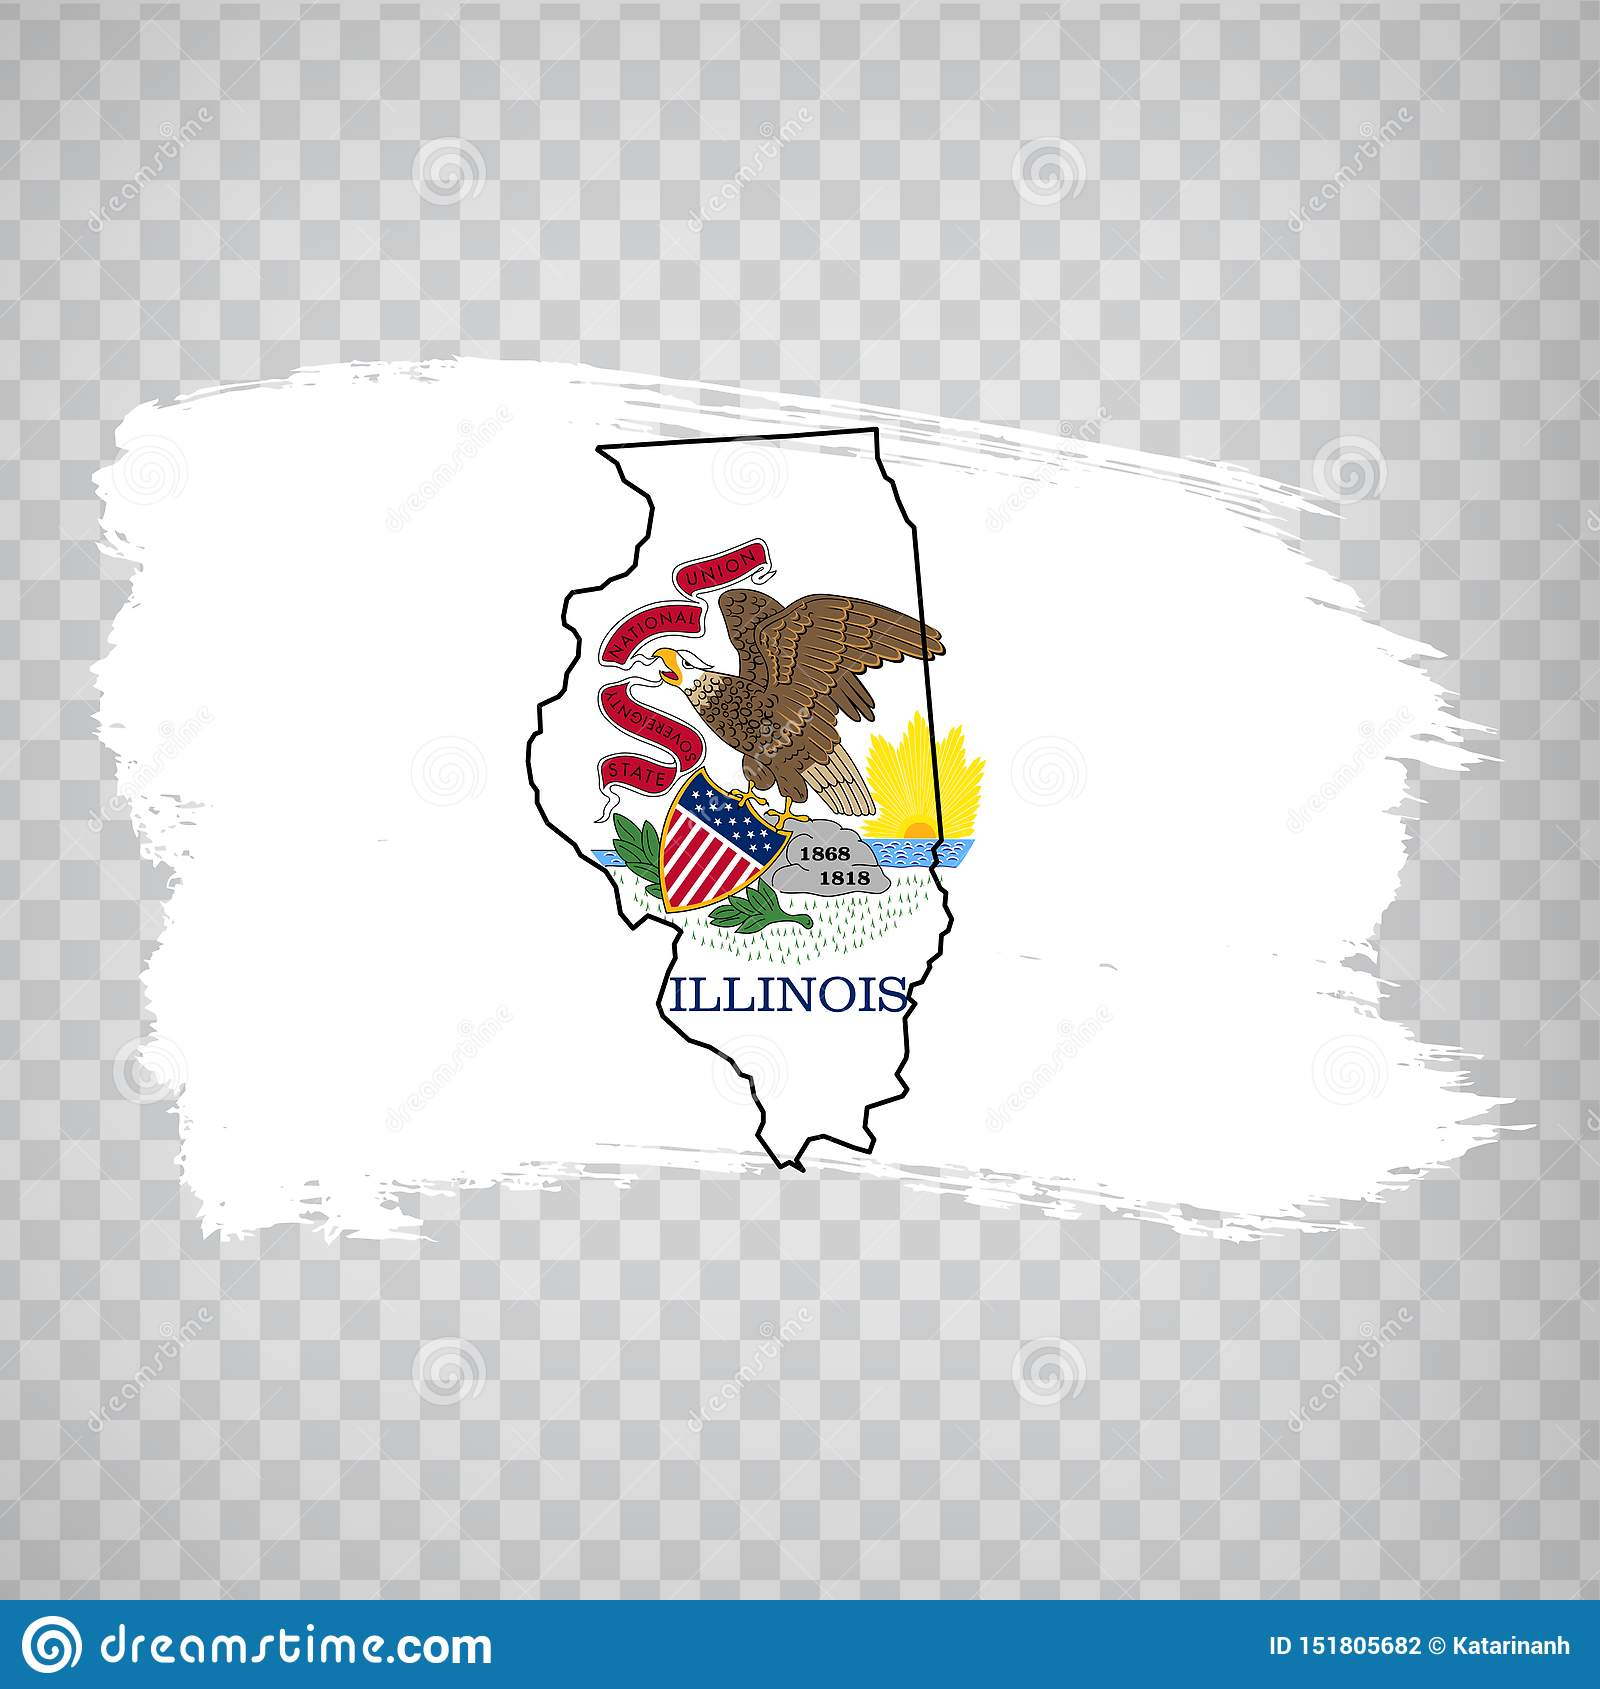 Flag Of Illinois From Brush Strokes And Blank Map Of ... Illinois State Map Cartoon on illinois map fun, illinois rt 66 map, illinois map 3d, illinois map western, illinois map book, illinois map outline, illinois map logo, illinois postcard, illinois map funny, illinois usa, illinois map crime, illinois map coloring page, illinois map joke, illinois map drawing, illinois on america, illinois black and white clip art, illinois map black, illinois map vintage, midwest cartoon, illinois map painting,